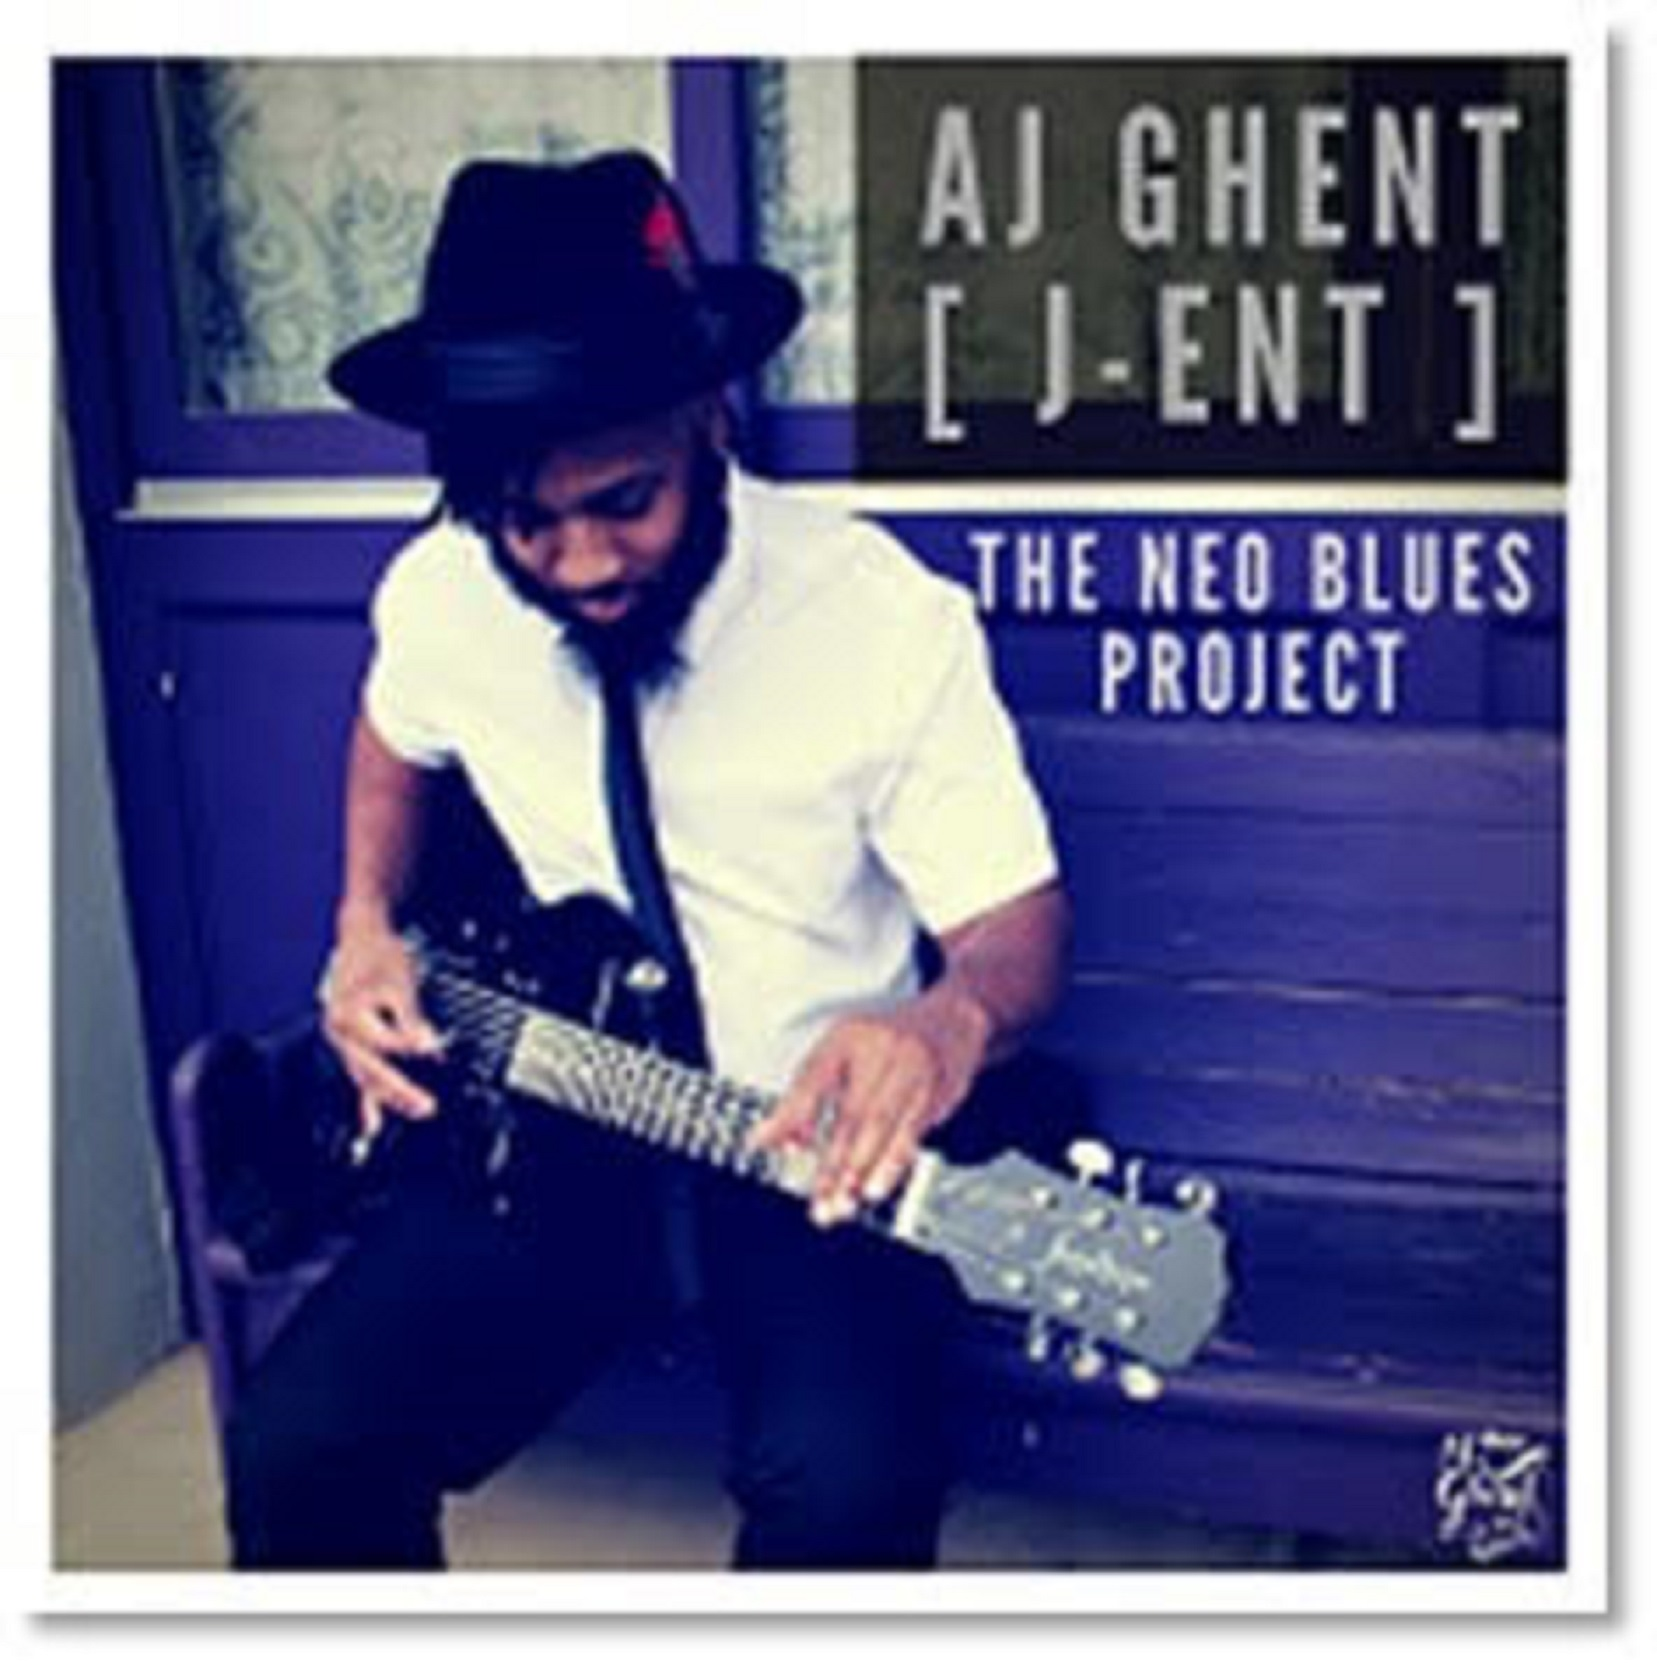 AJ GHENT [J-ent] THE NEO-BLUES PROJECT: OUT MARCH 16, 2018